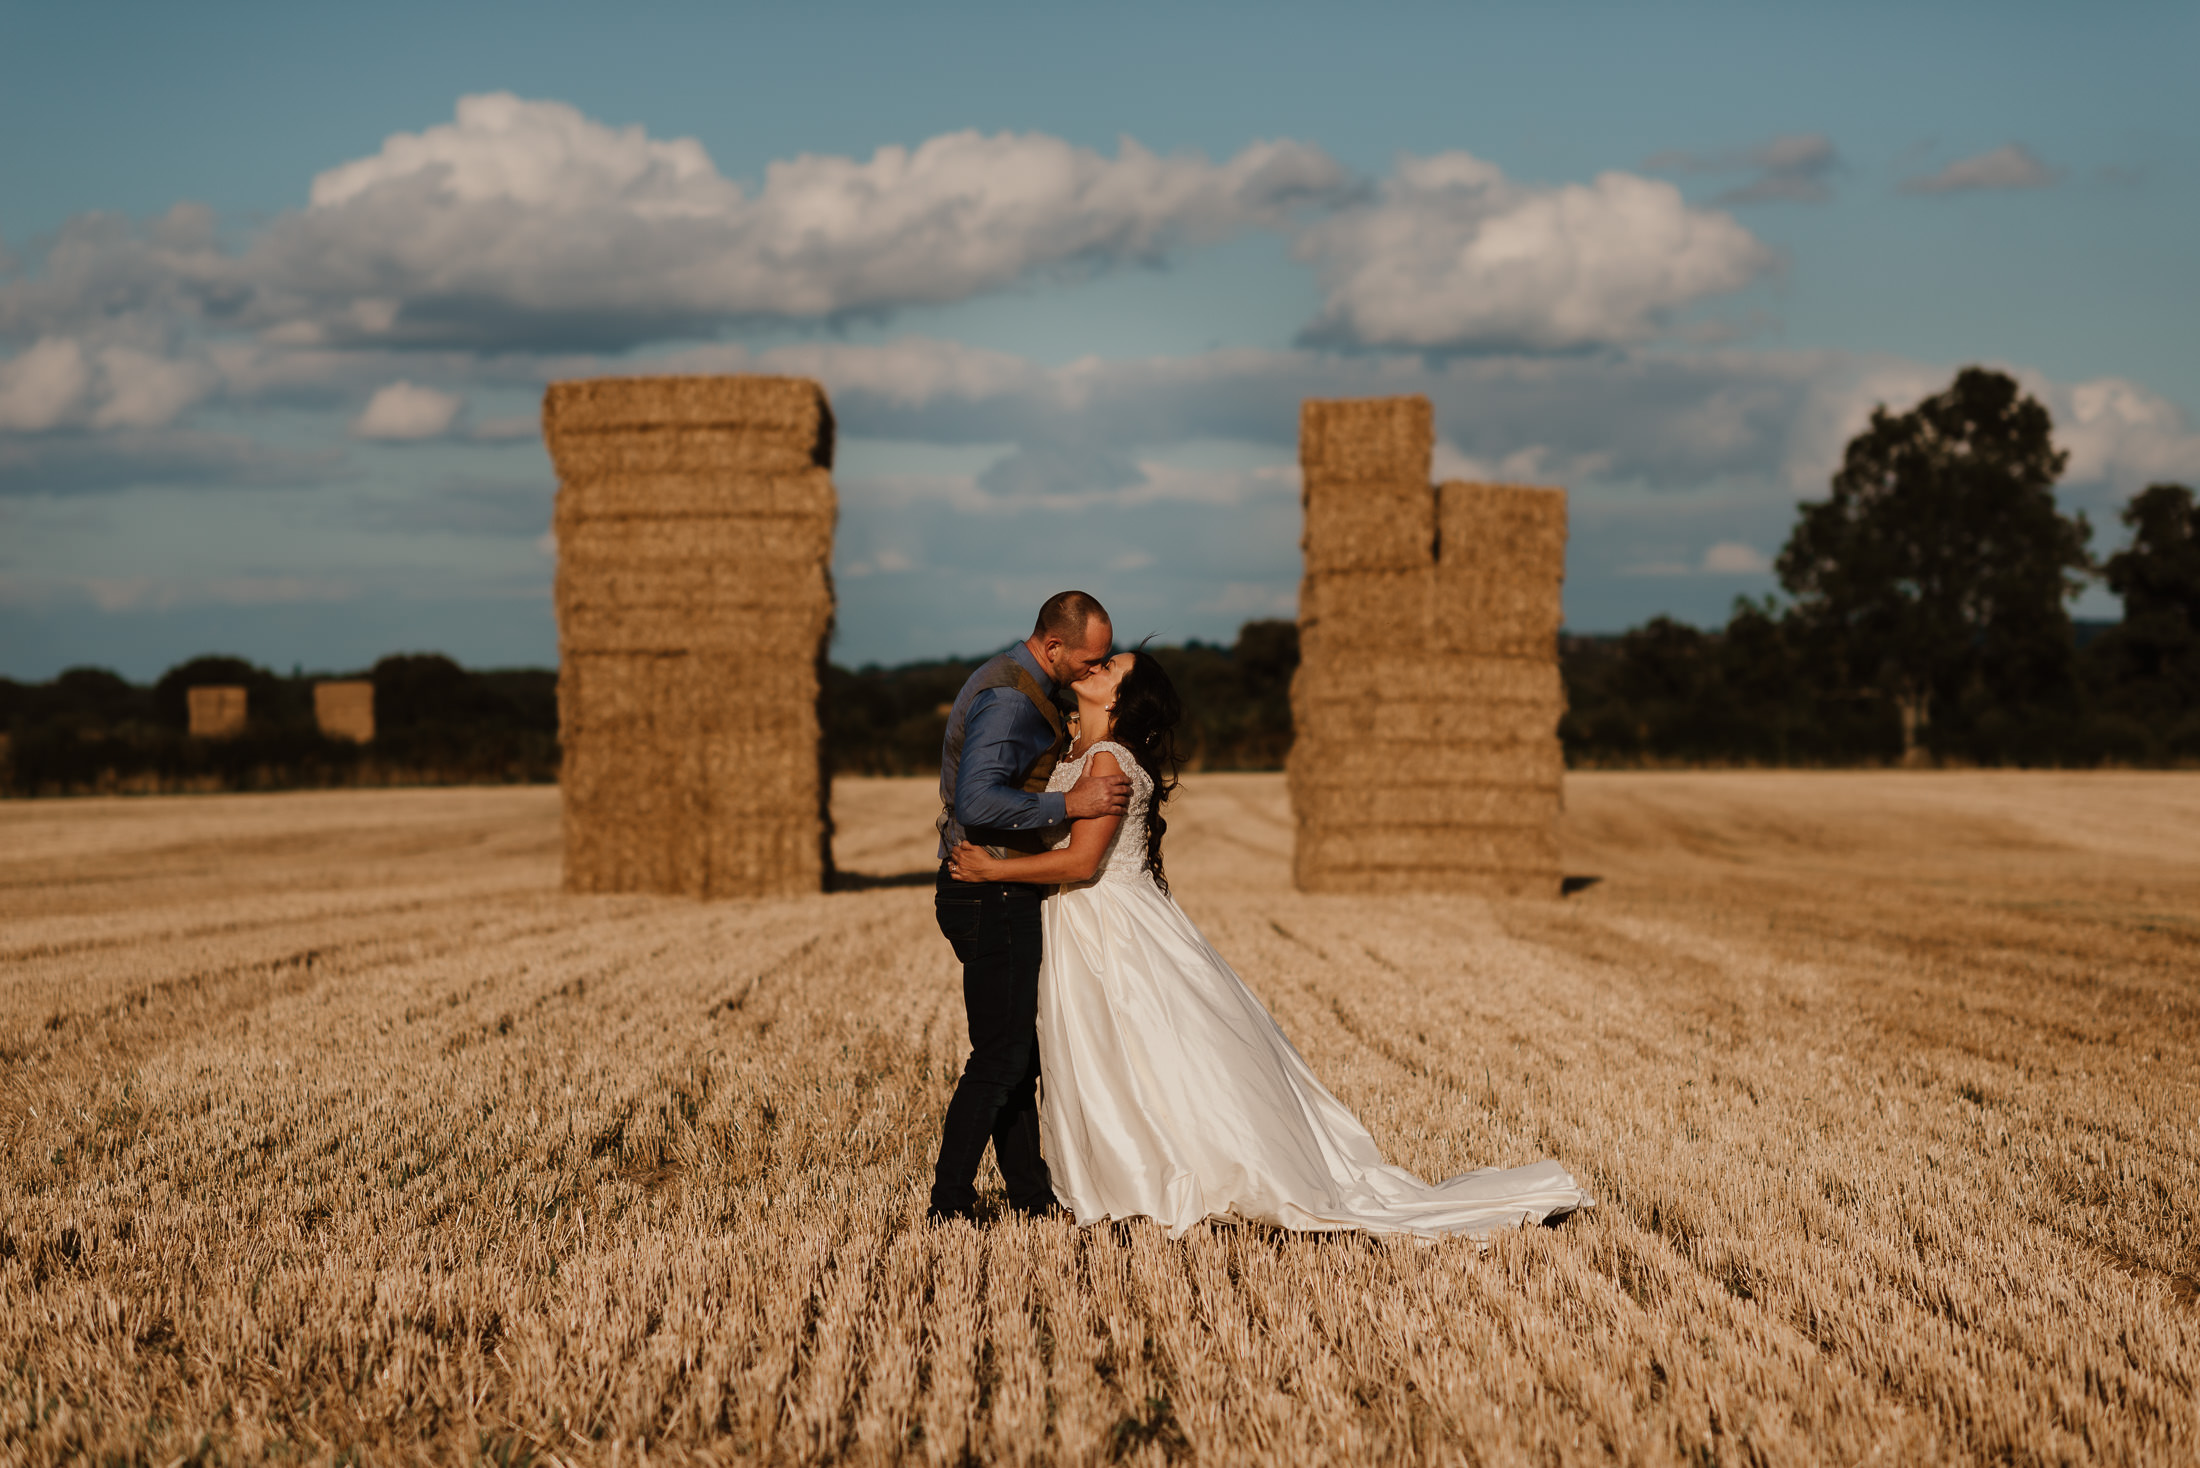 bride and groom kissing between 2 straw stacks on a field against a blue sky by North Wales Wedding Photographer